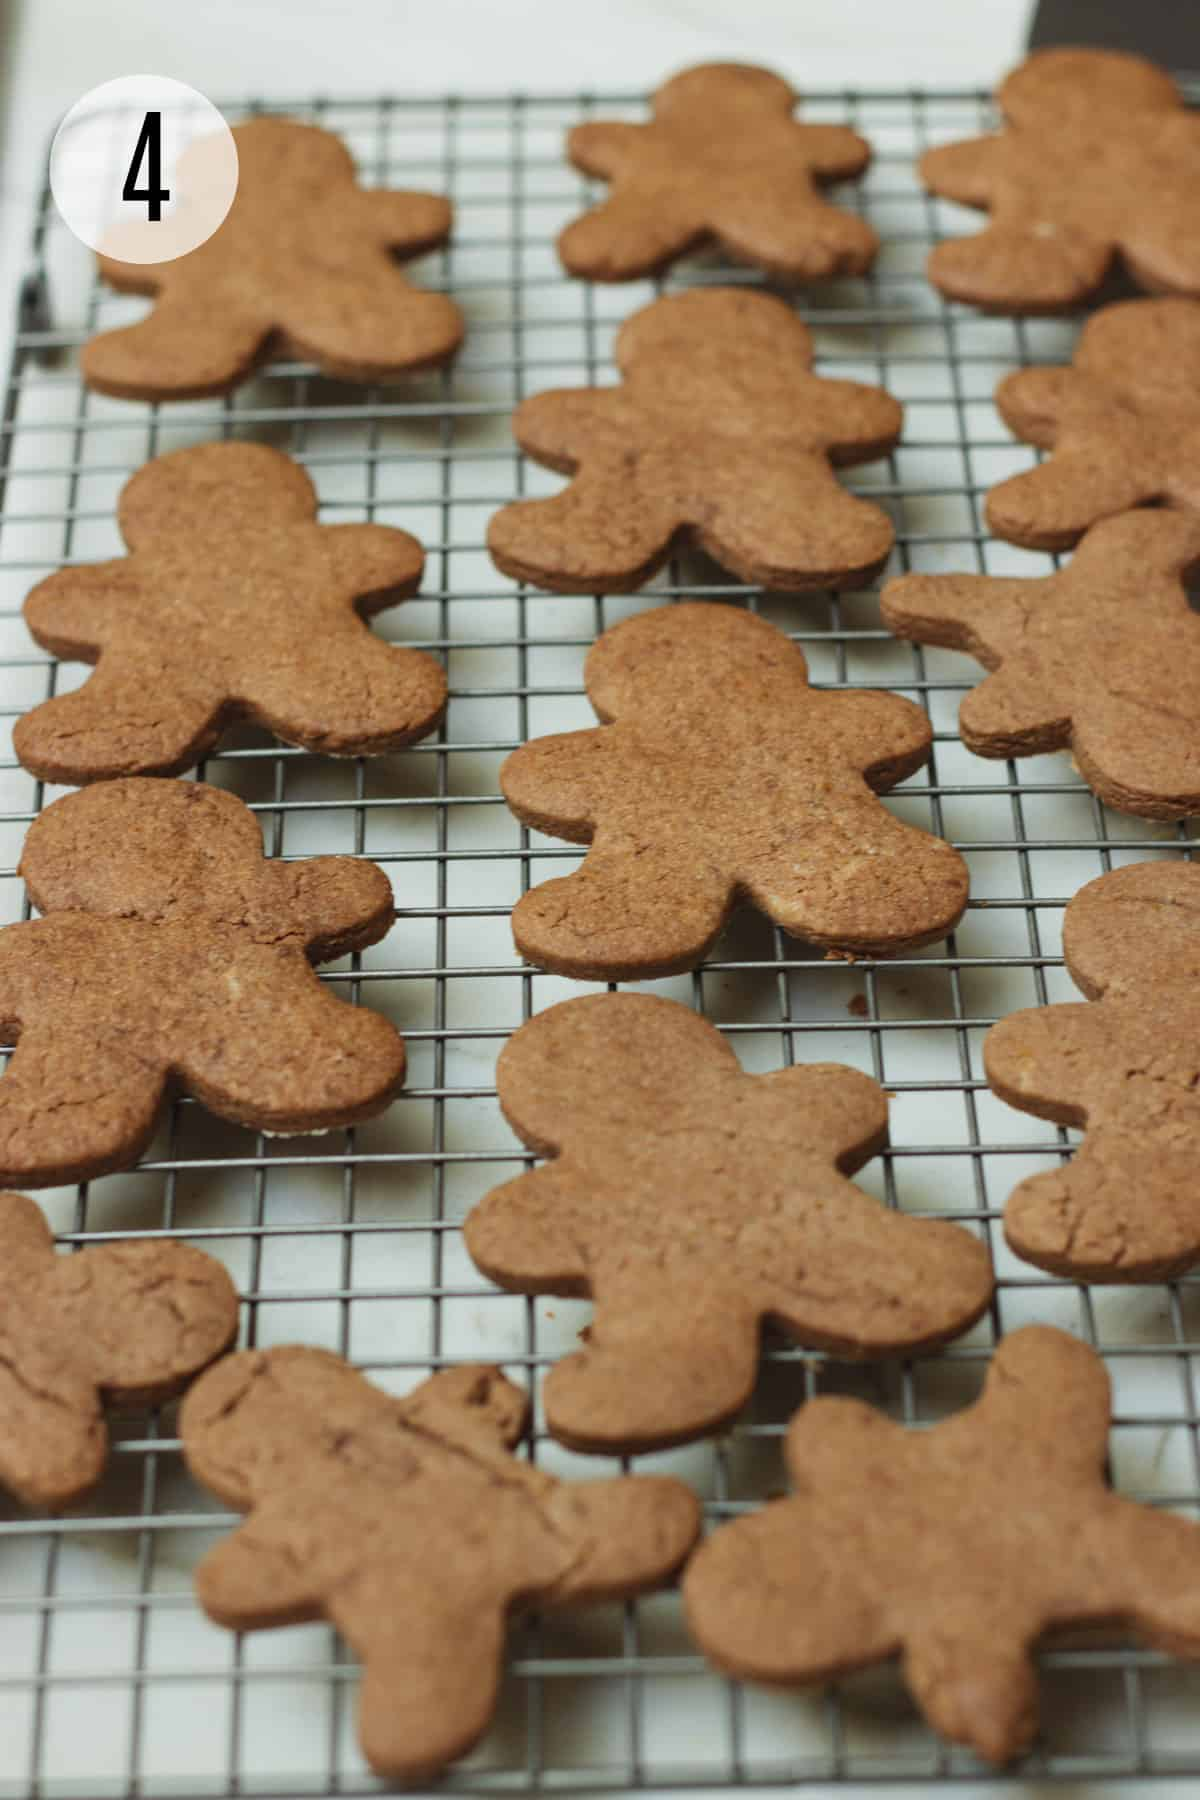 Baking rack with gingerbread man shaped Mexican chocolate sugar cookies.